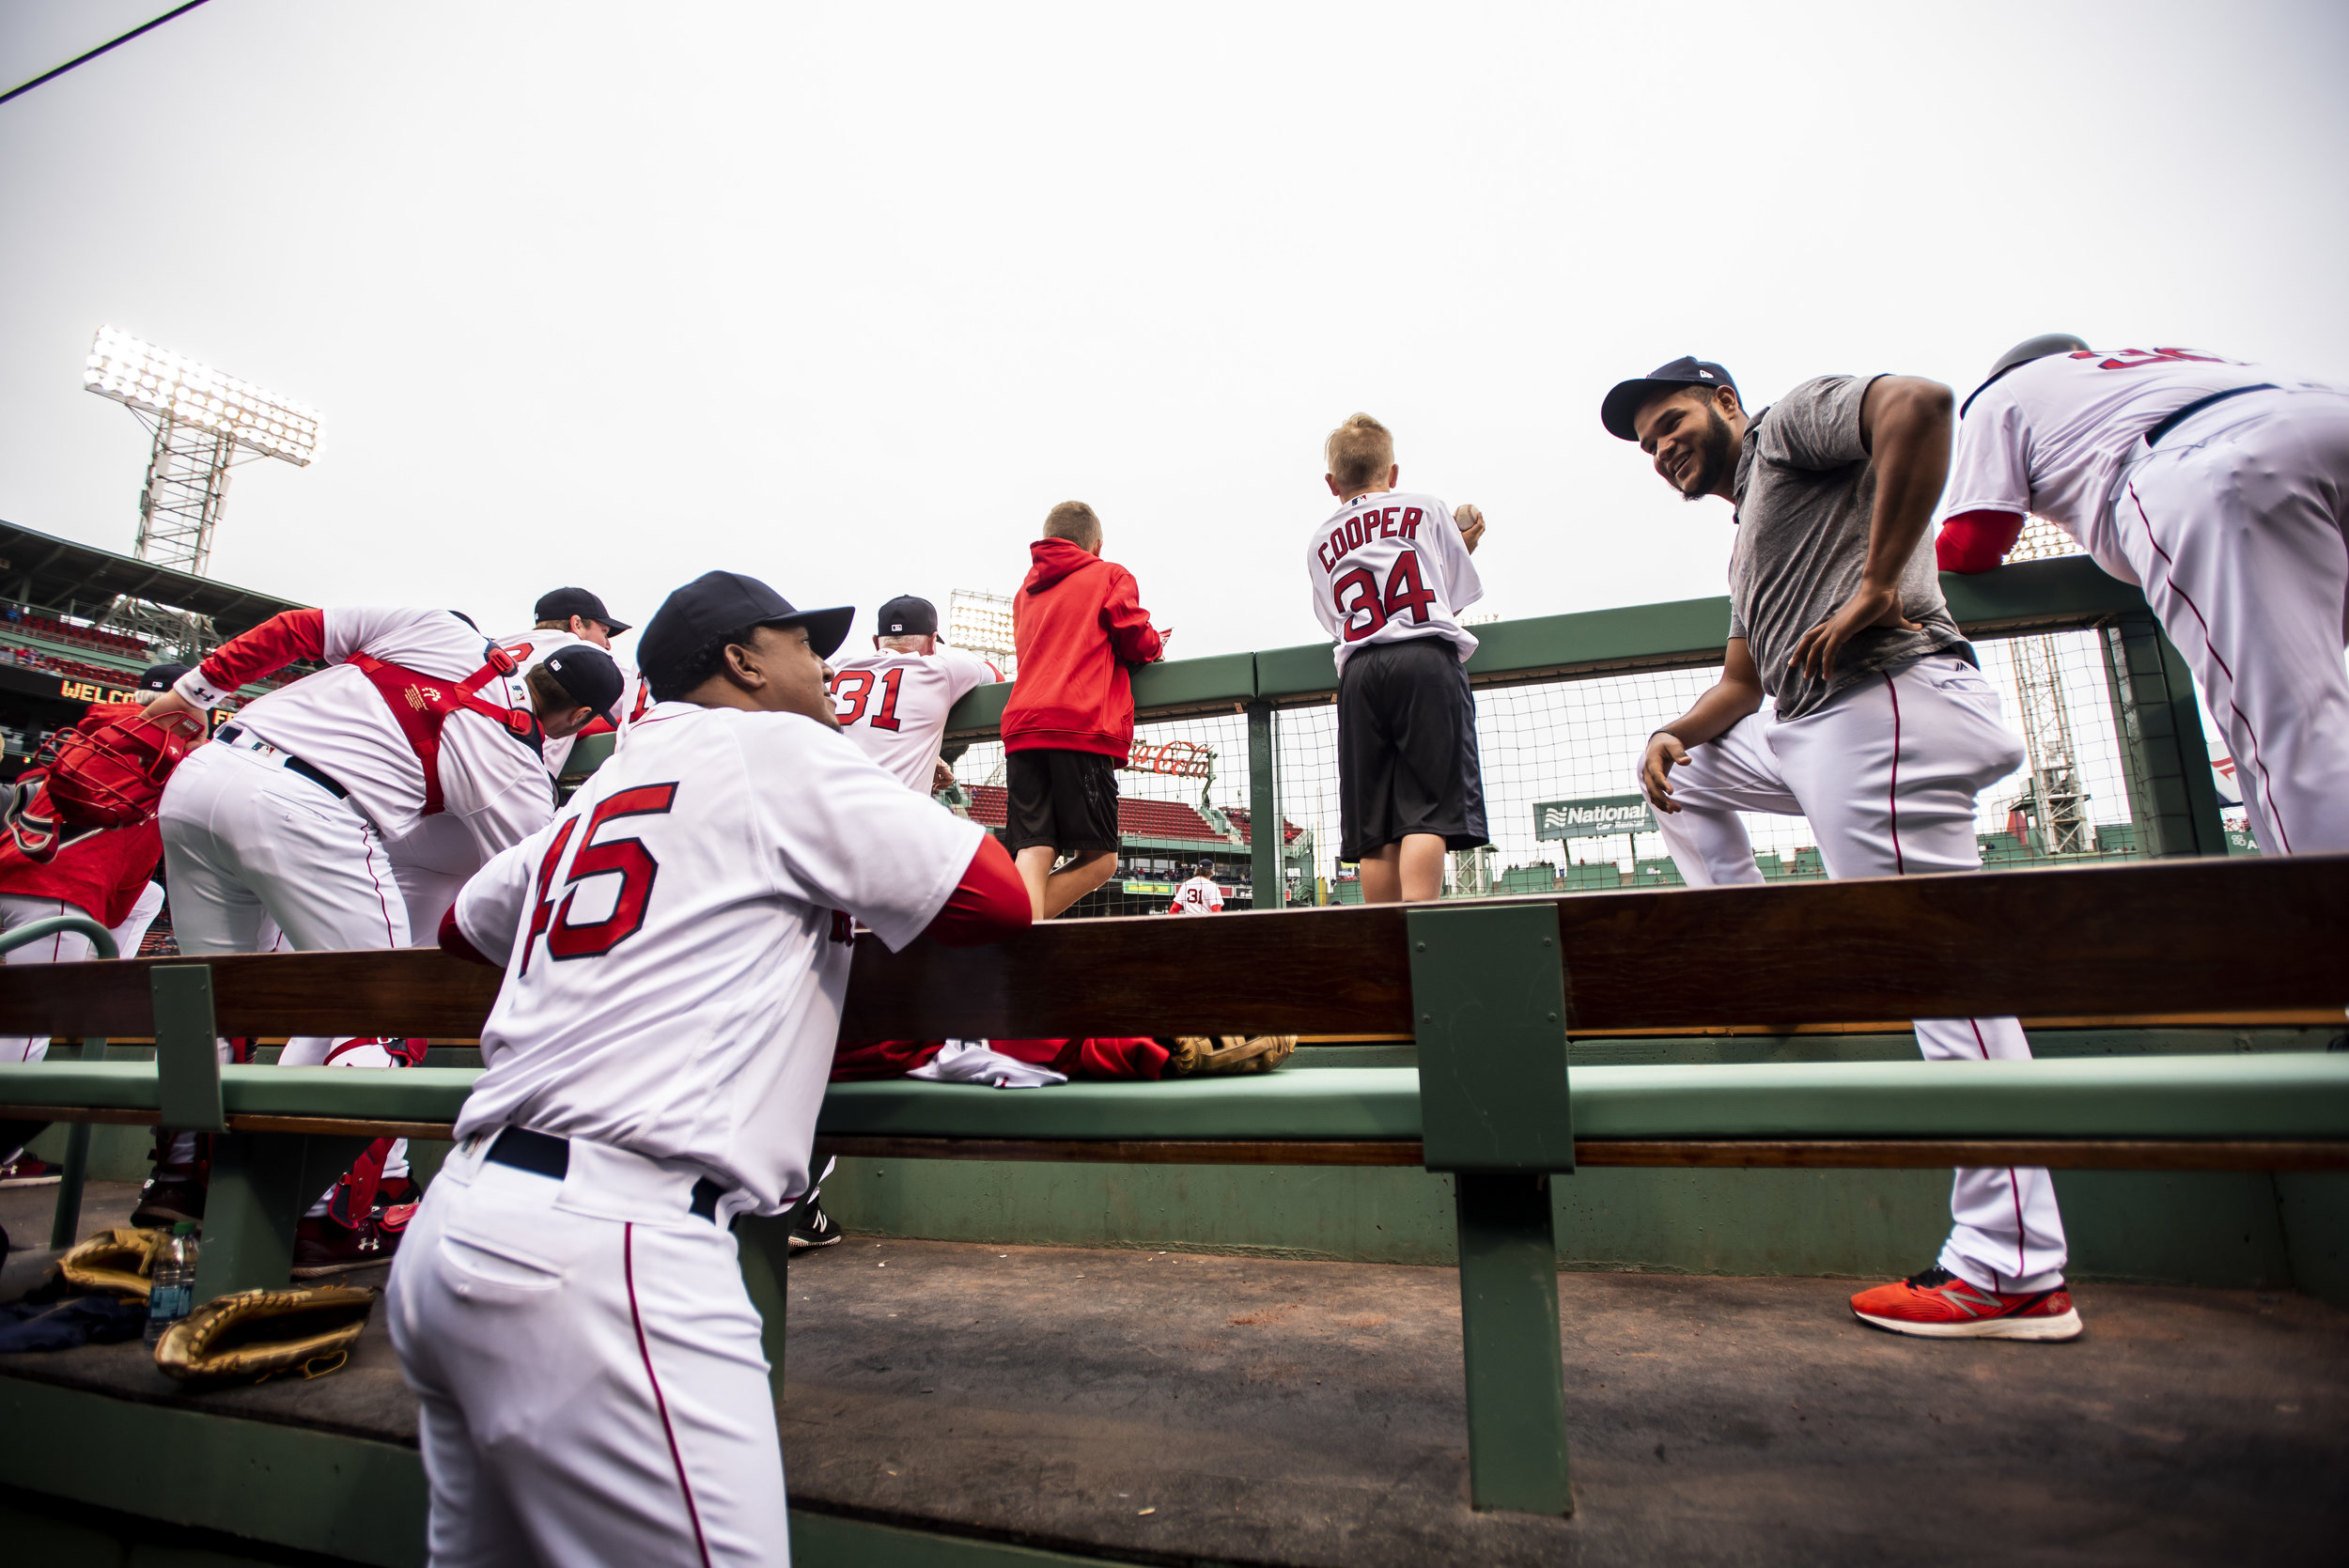 May 27, 2018, Boston, MA: Boston Red Sox pitcher Eduardo Rodriguez chats with Pedro Martinez in the dugout during Alumni Game at Fenway Park in Boston, Massachusetts on Sunday, May 27, 2018. (Photo by Matthew Thomas/Boston Red Sox)